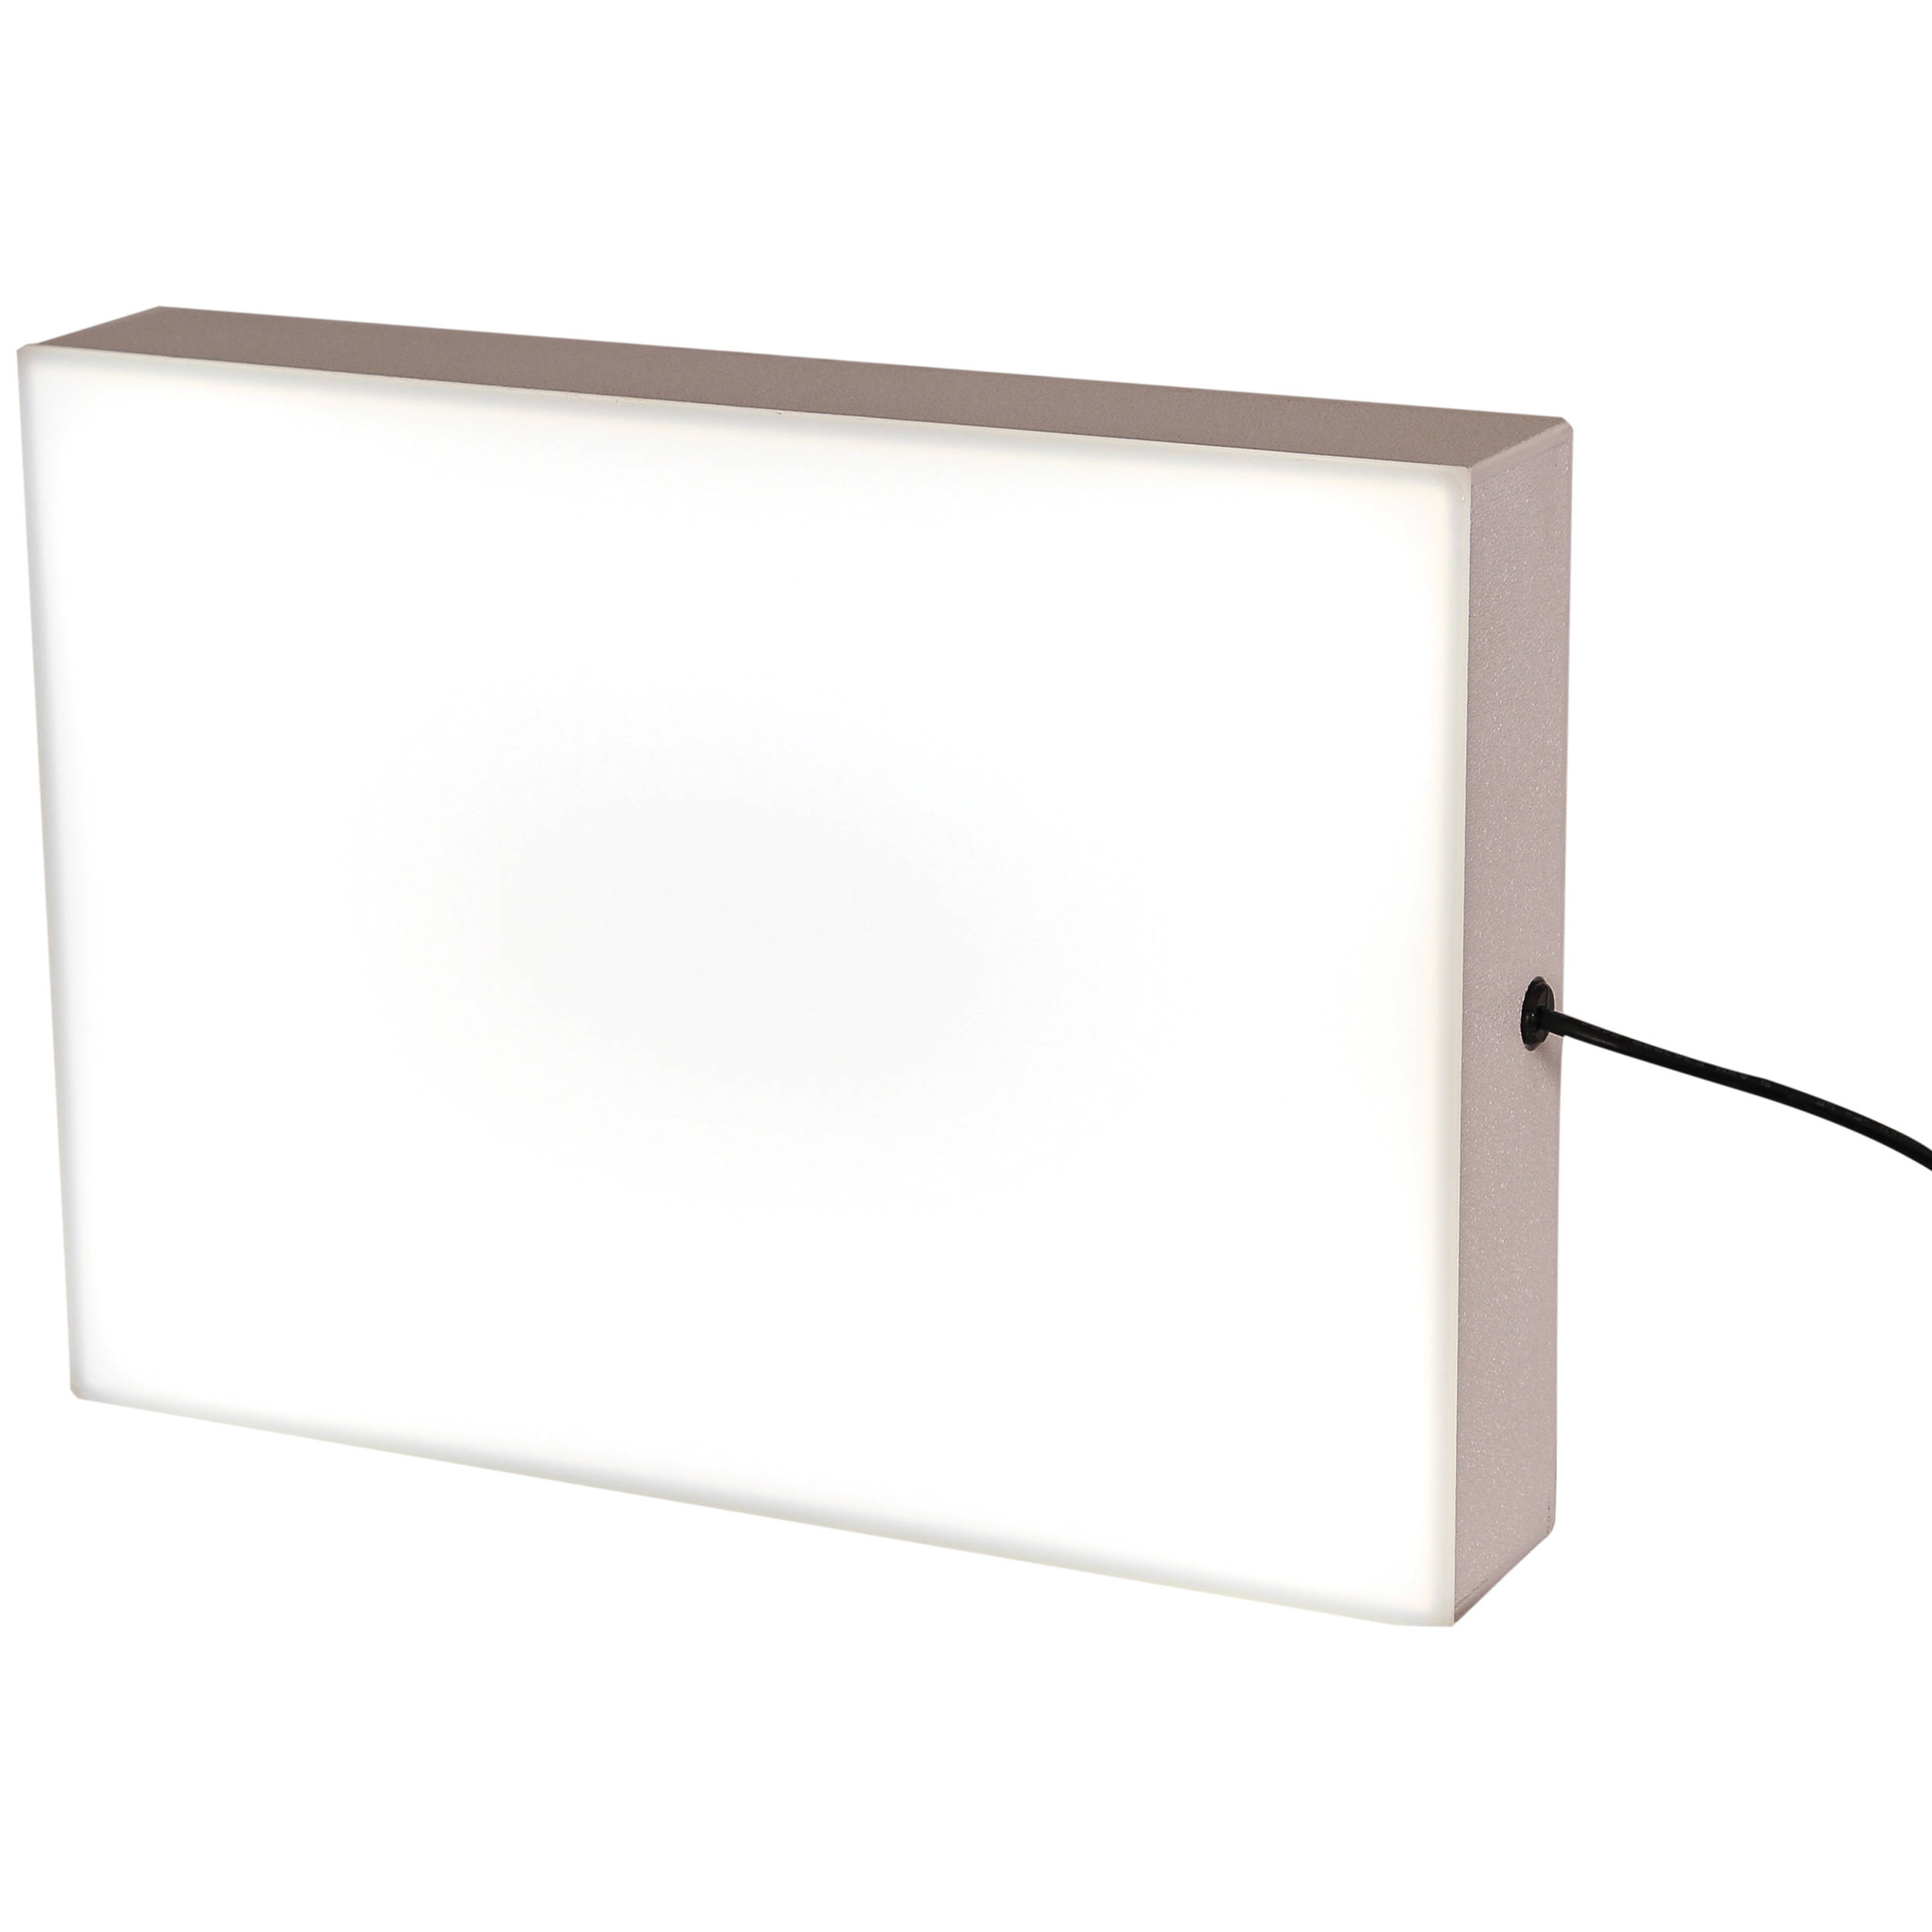 "Porta-Trace / Gagne 8x10"" LED ABS Plastic Light Box (White)"